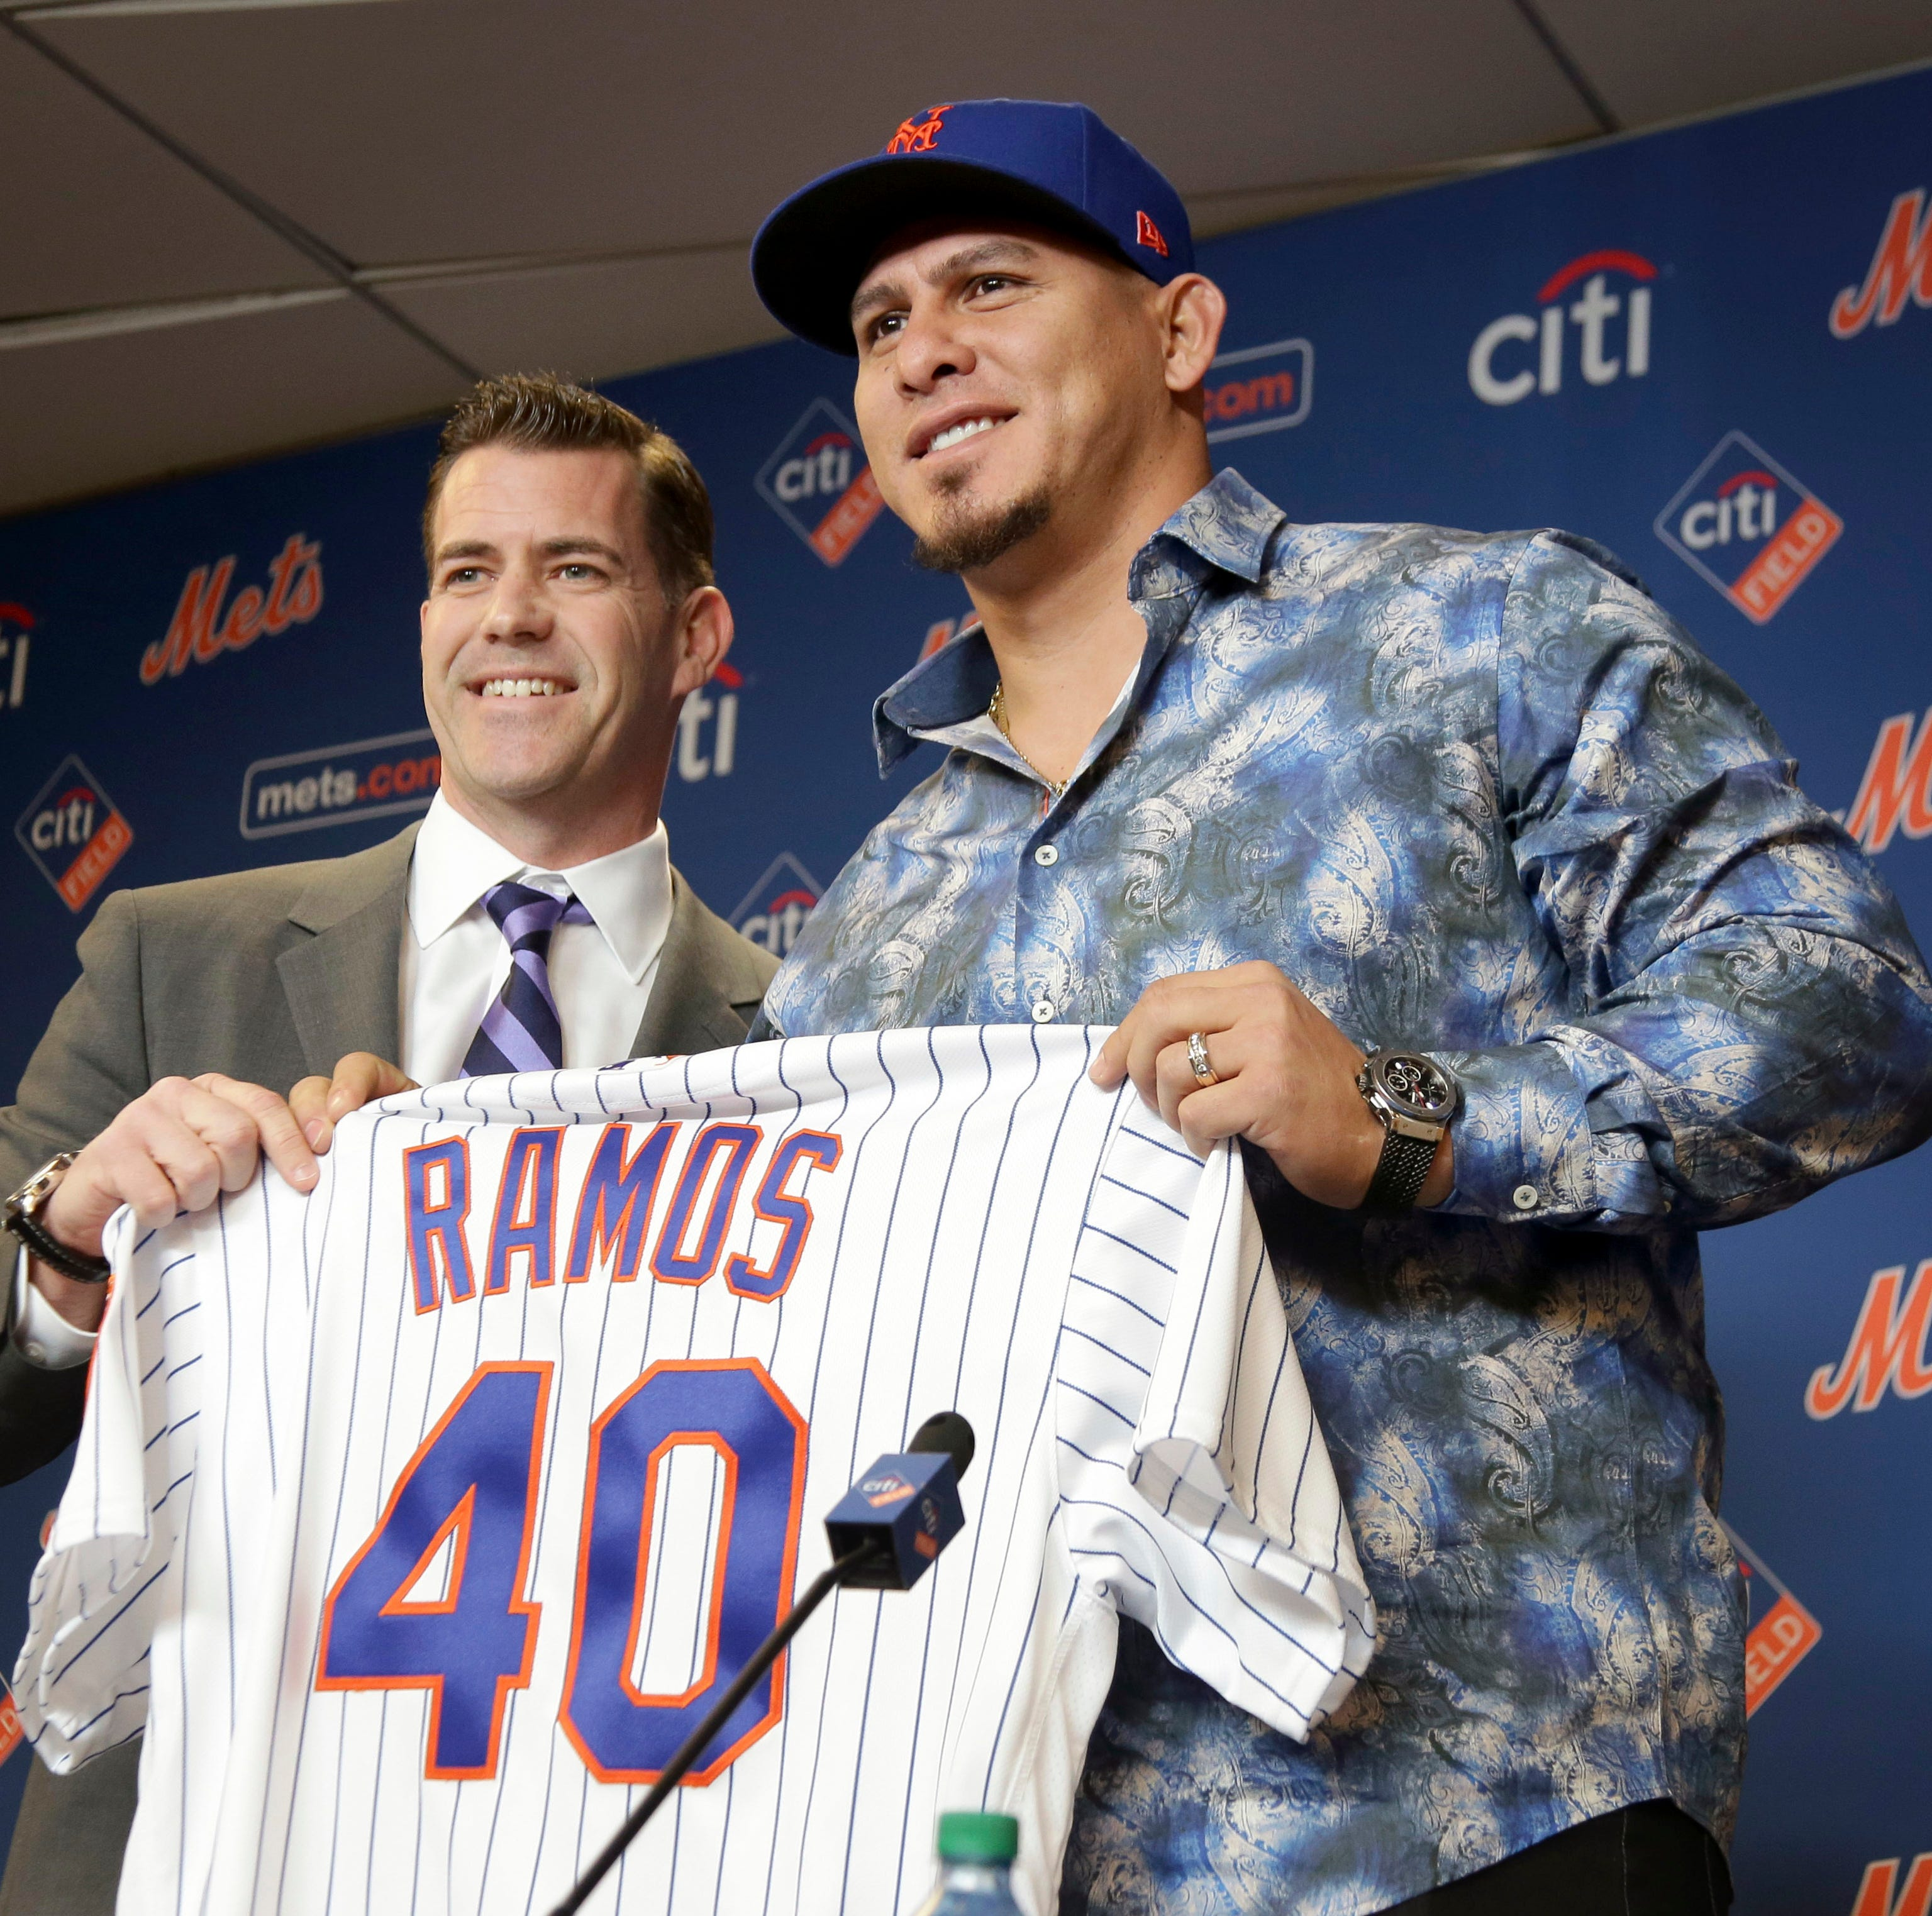 With Wilson Ramos, Mets have added four significant pieces, have sights on NL East crown